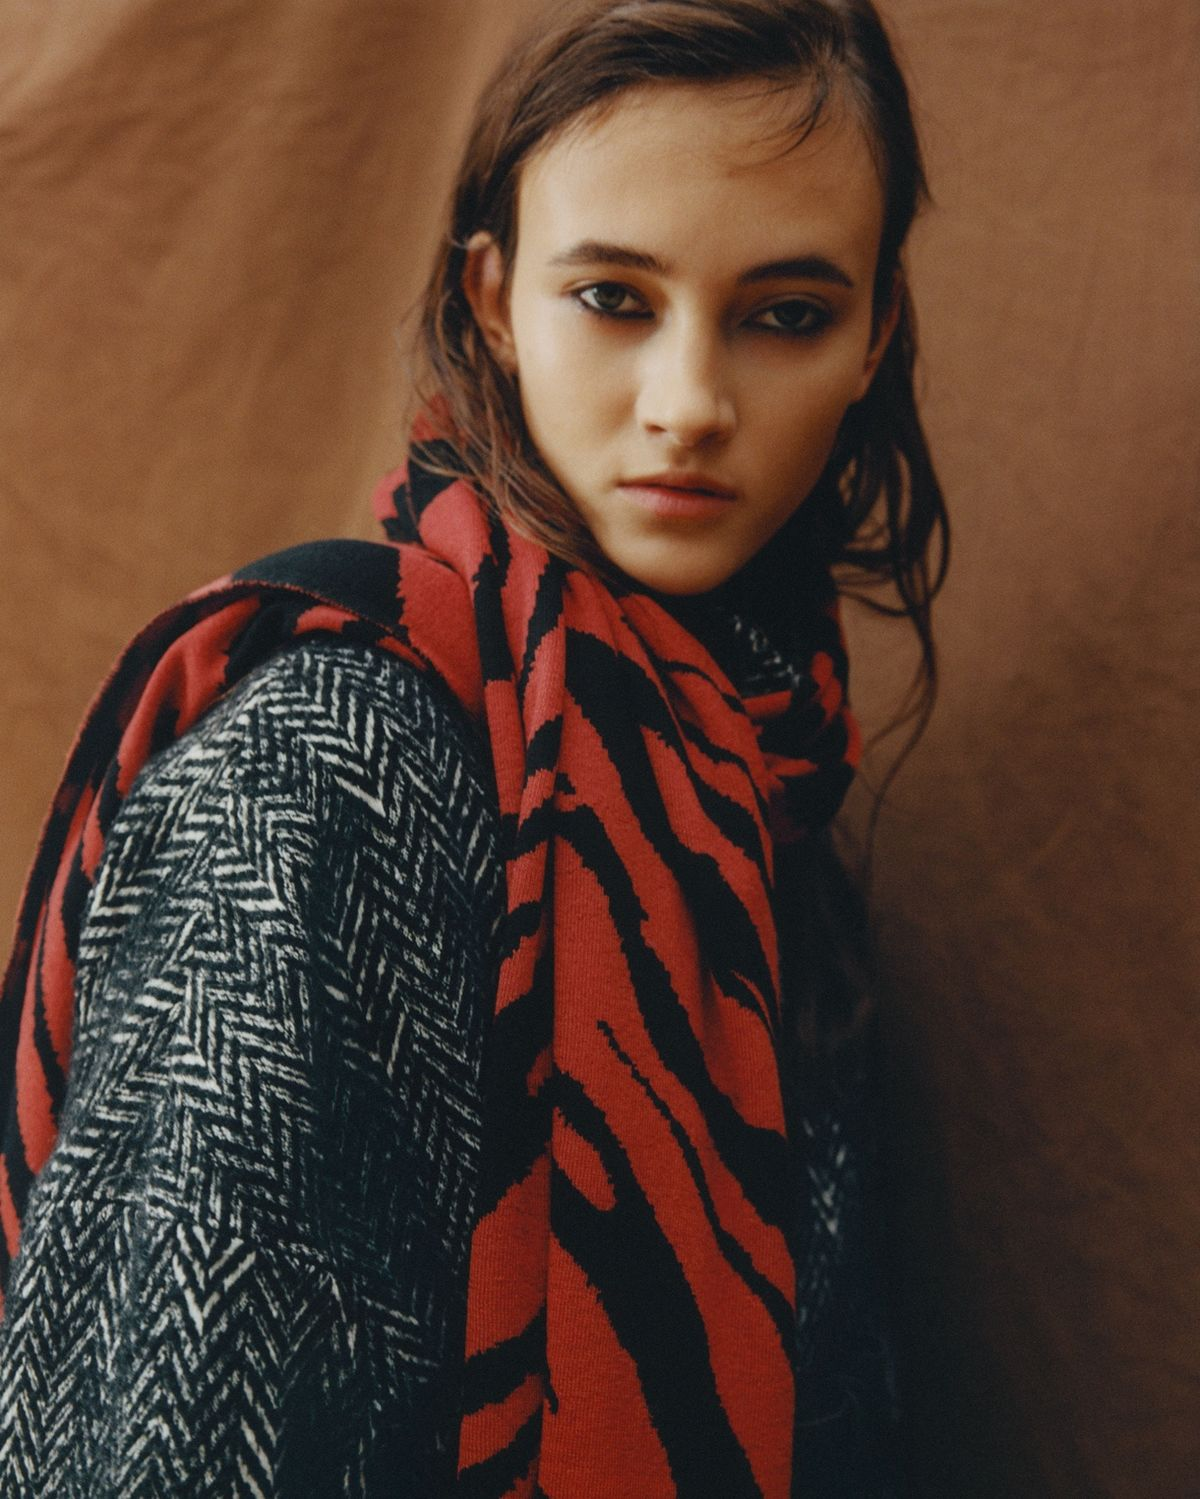 Portrait of a woman wearing a Herringbone coat with a red and black zebra scarf wrapped around her neck.